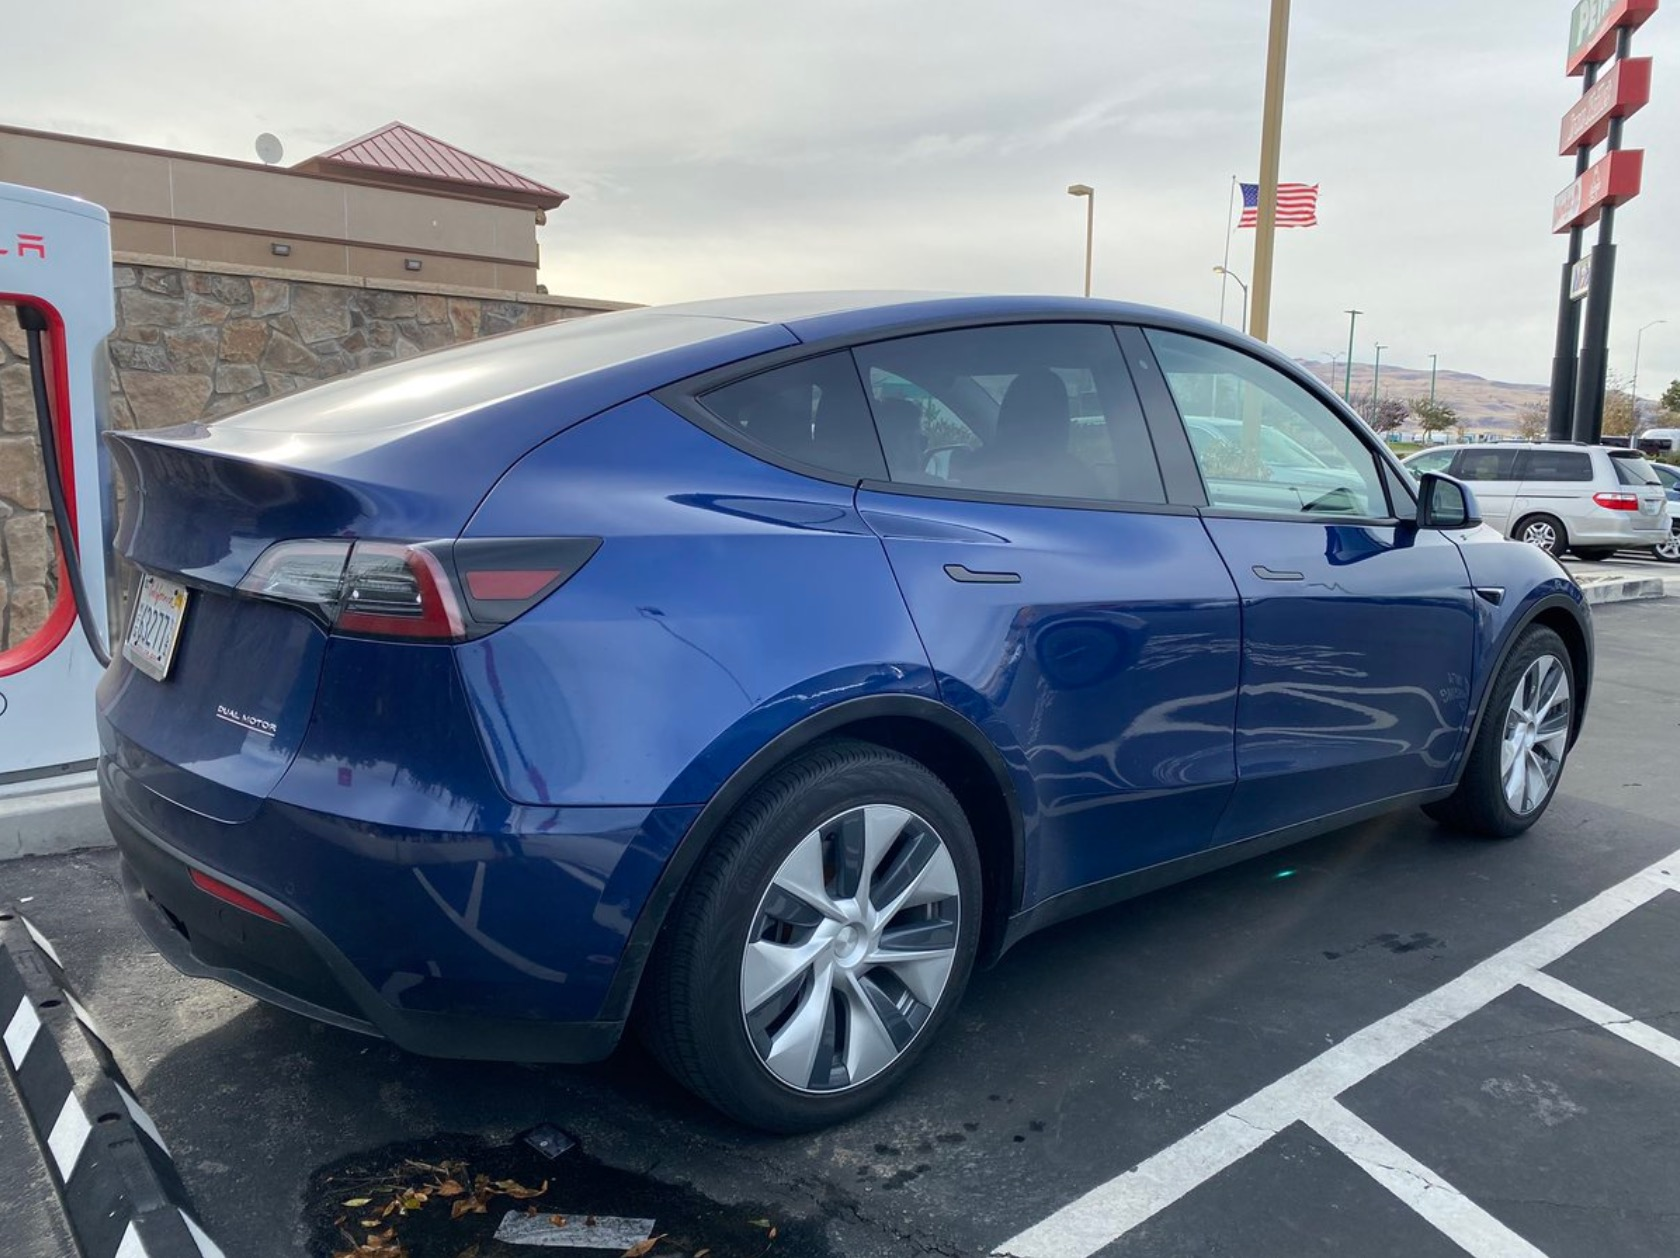 Tesla Model Y prototype spotted with tow hitch - Electrek